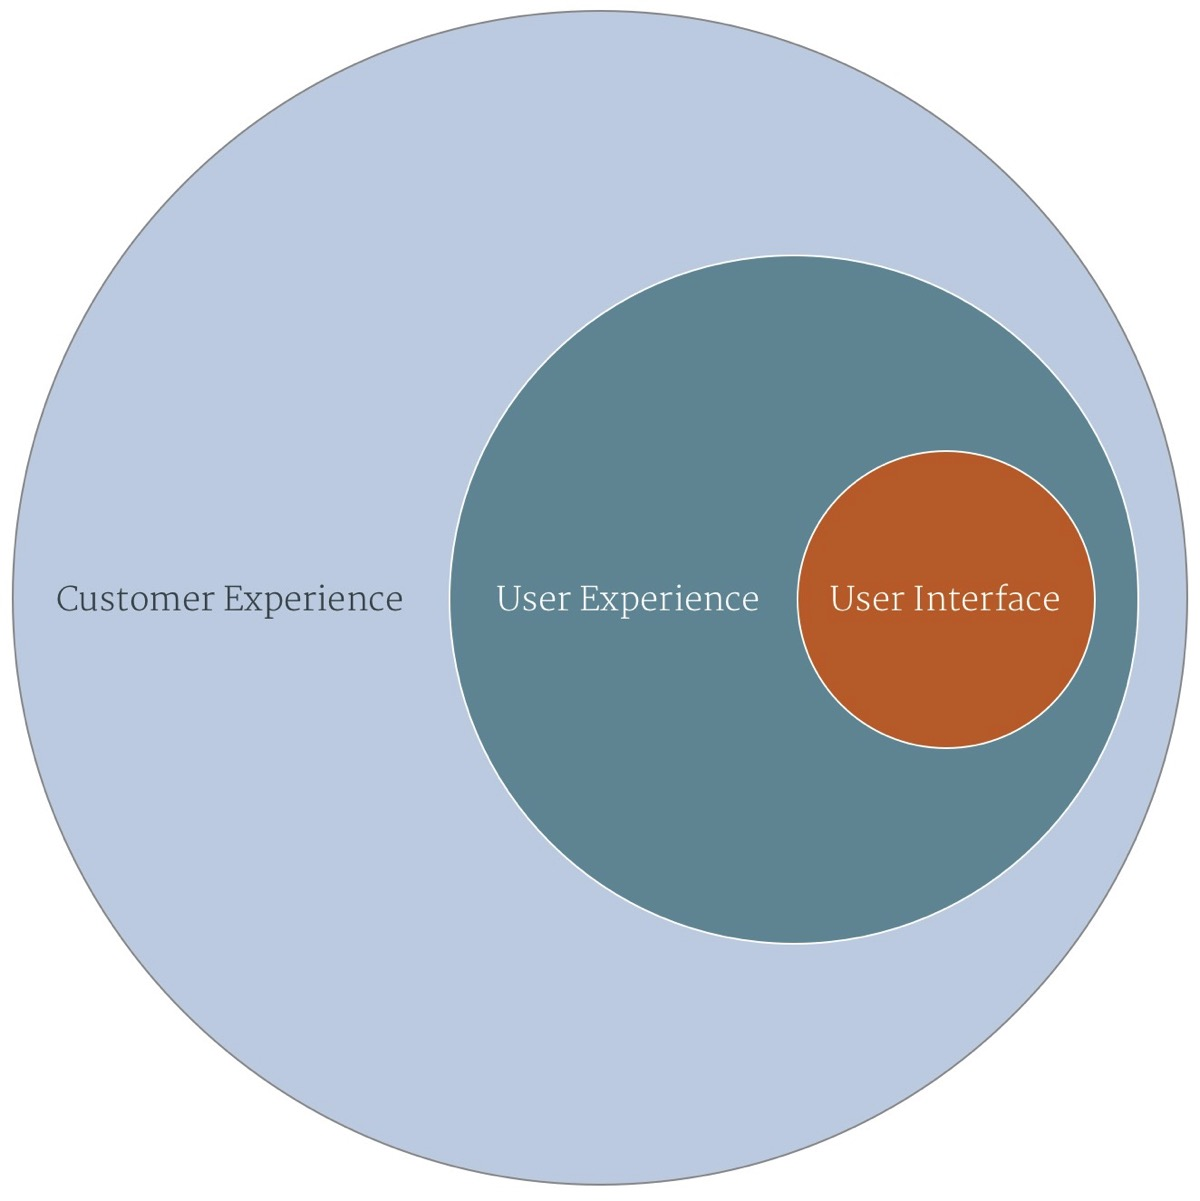 Understanding the relationship between customer experience designer, user experience designer and user interface designer is important.